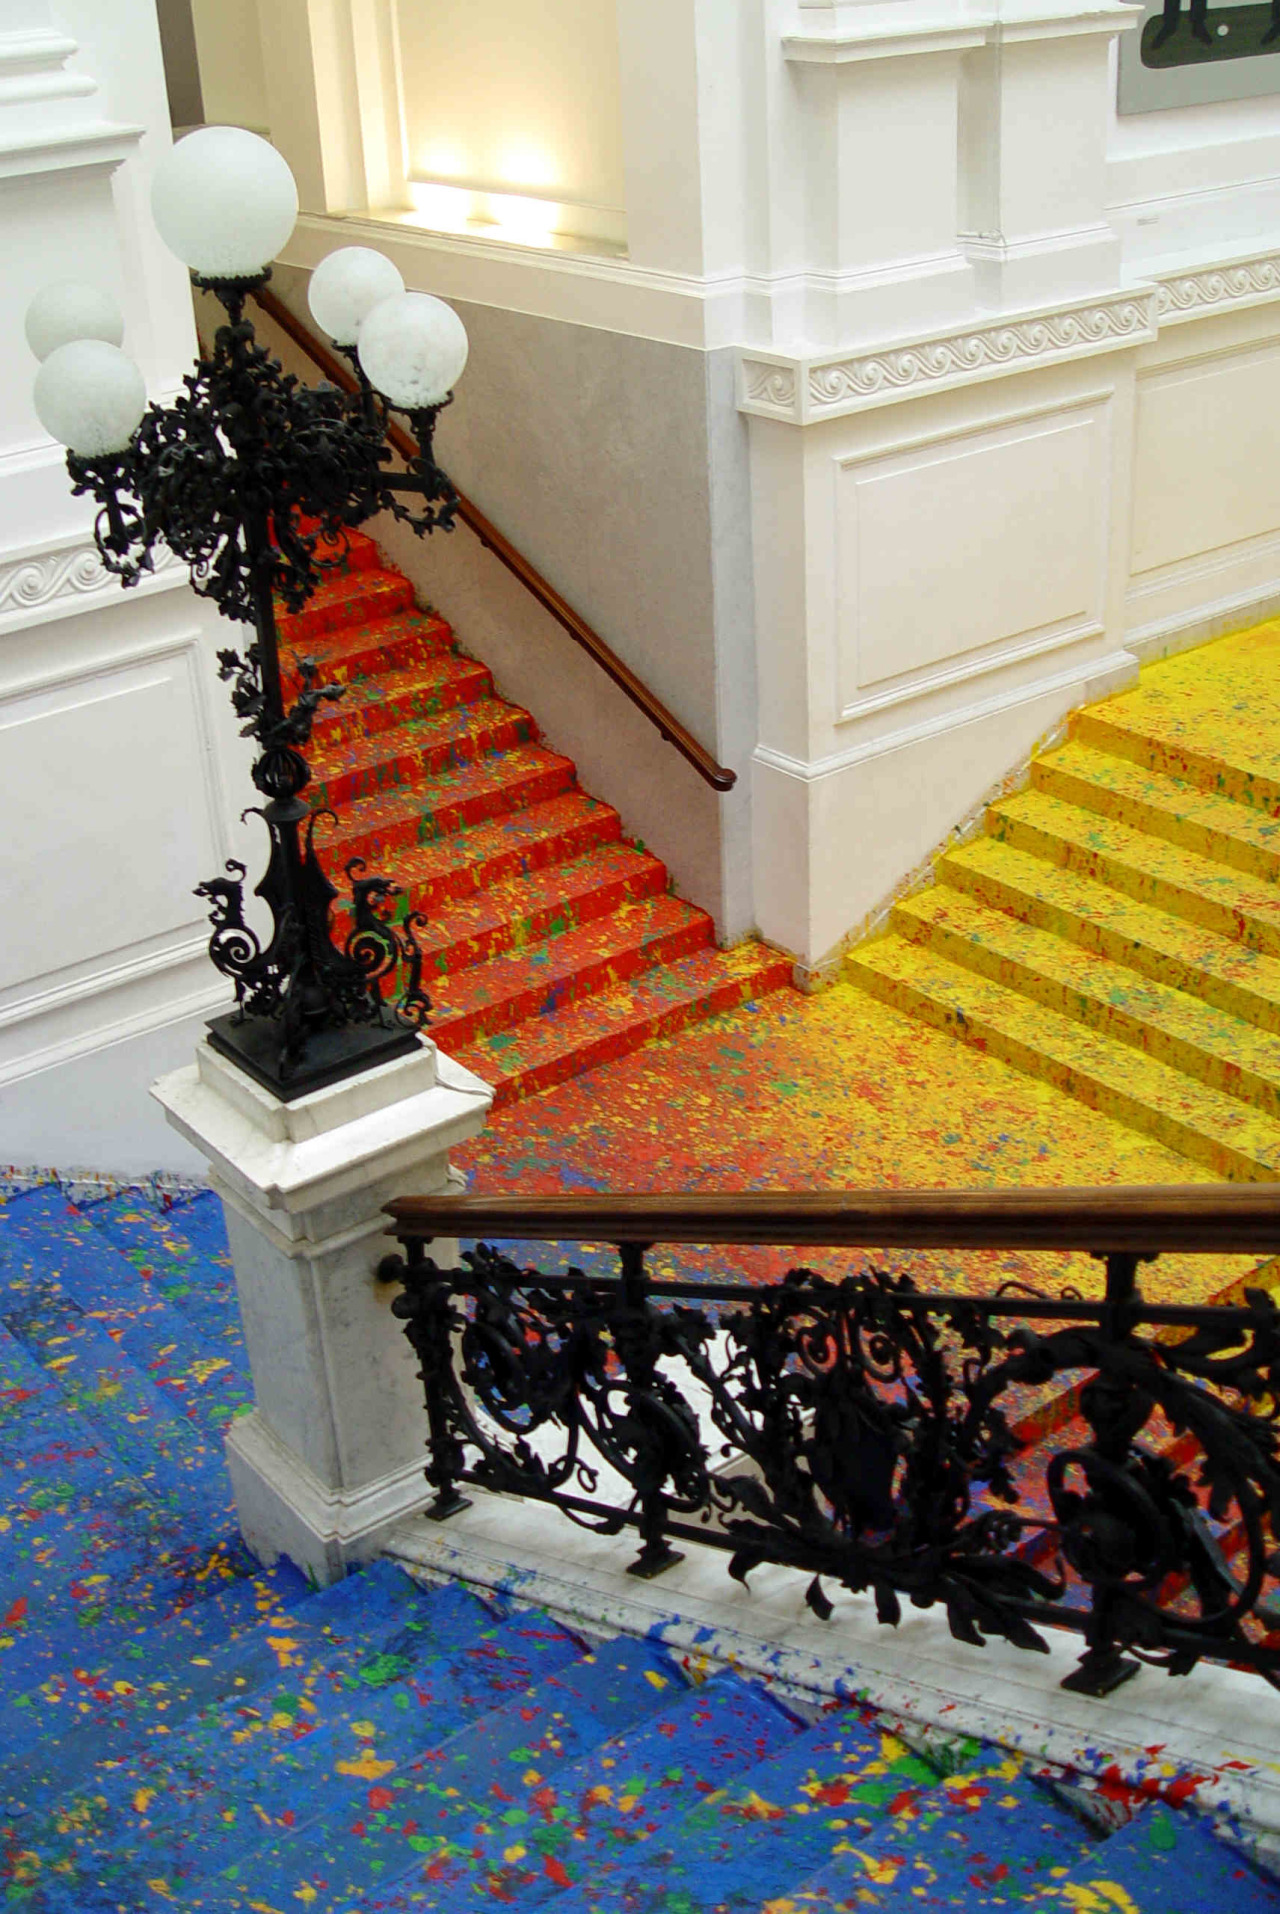 Artist Leon Tarasewicz Covers the Poland National Gallery's Great Hall Staircase in Splatter Paint (3 pics)